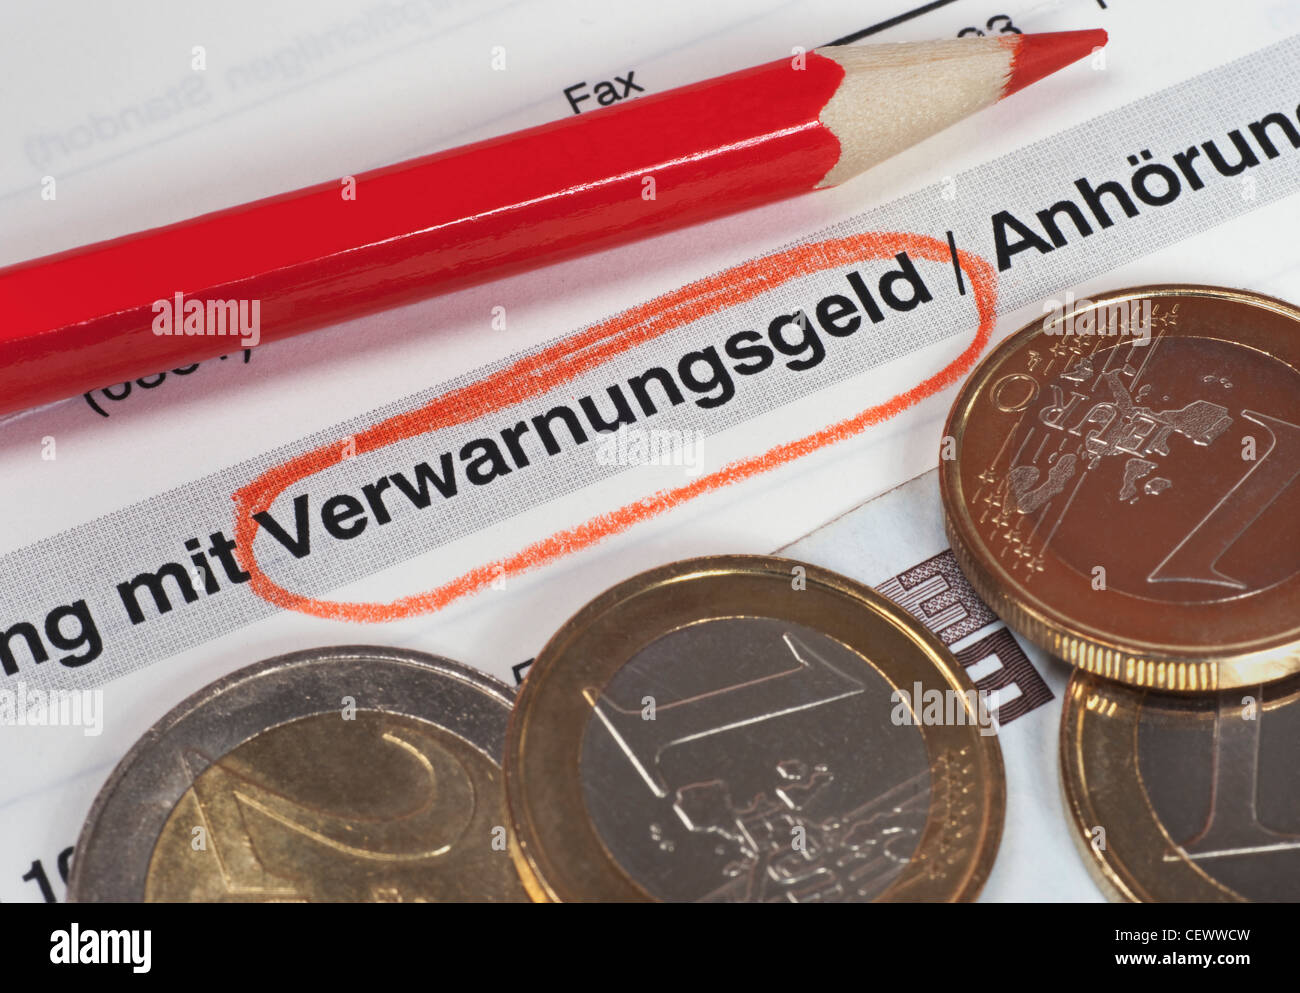 fine for speeding, marked red, beside is a red colored crayon and some Euro coins - Stock Image